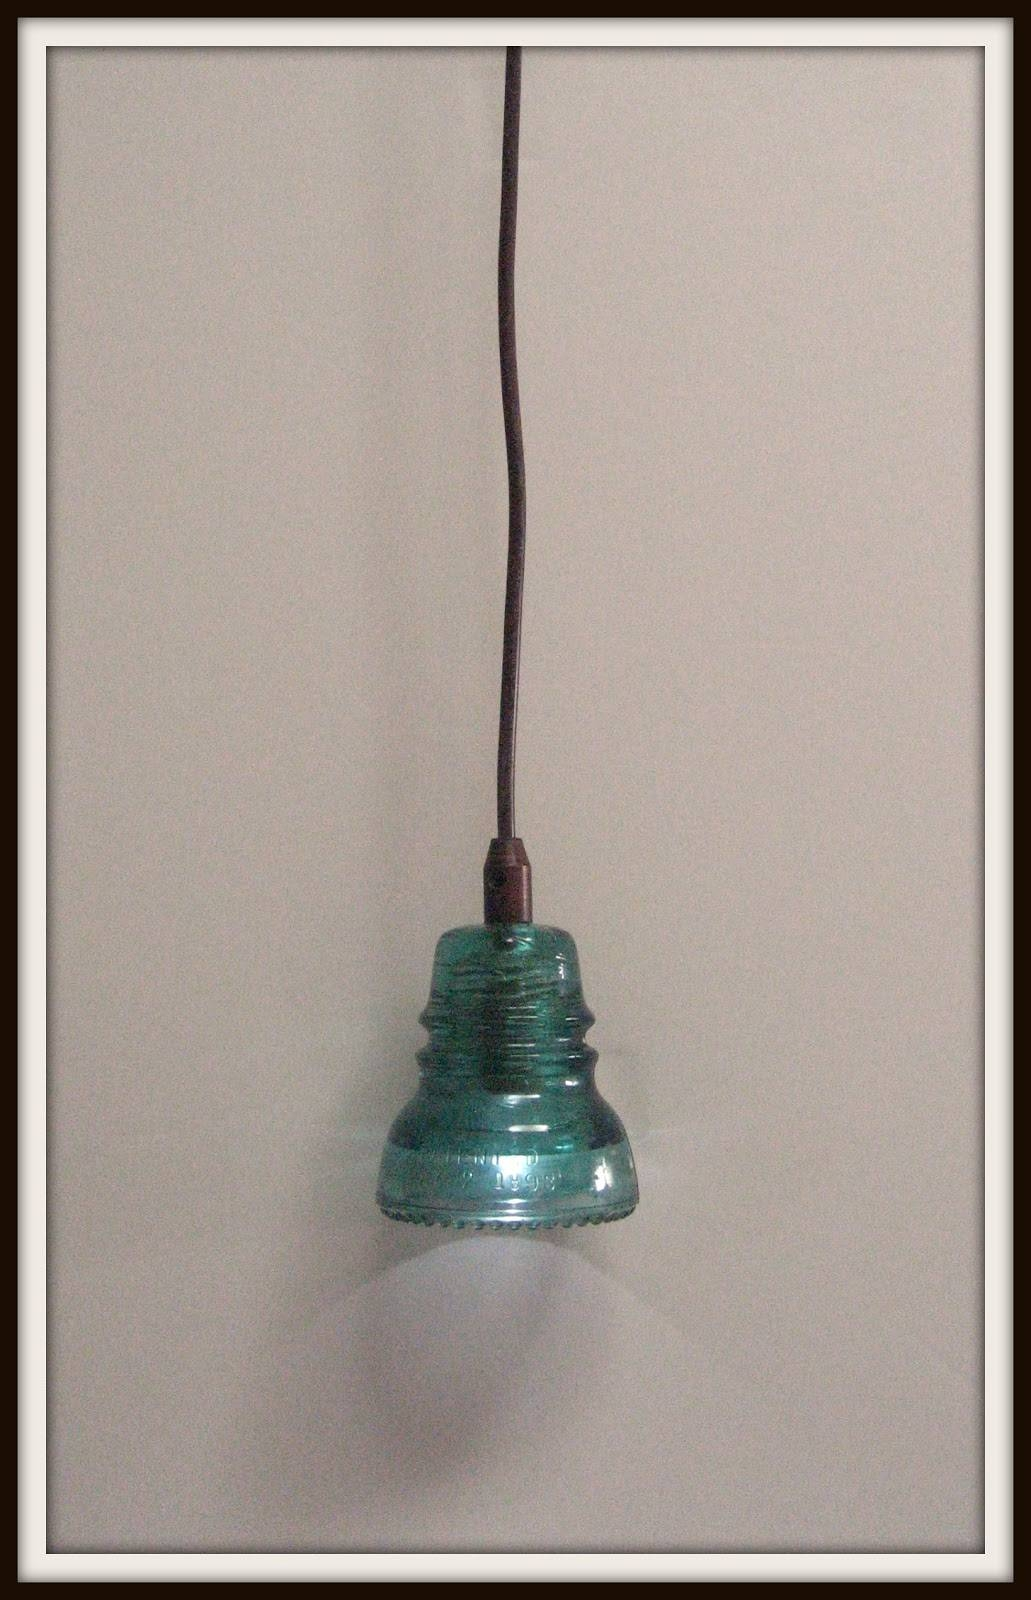 Remodelaholic | Recycling Glass Insulators Into Pendant Light Throughout Insulator Pendant Lights (View 13 of 15)